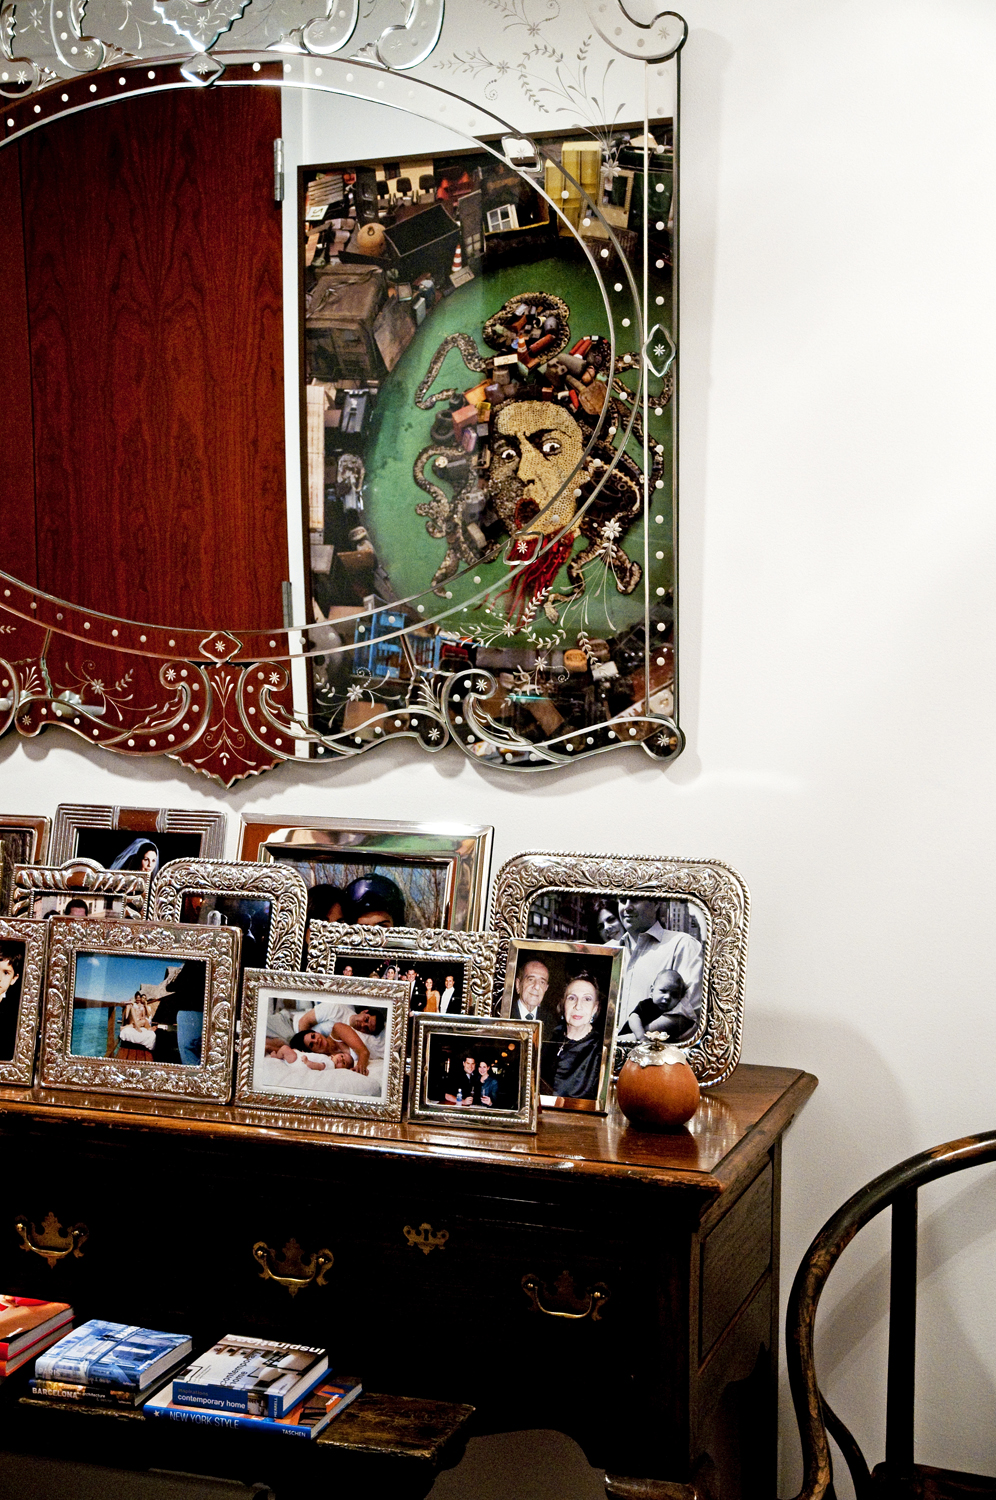 """A Vik Muniz piece from an edition of 6 called """"Medusa After Caravaggio"""" from the """"Junk"""" series is reflected on a Venetian mirror in my foyer."""